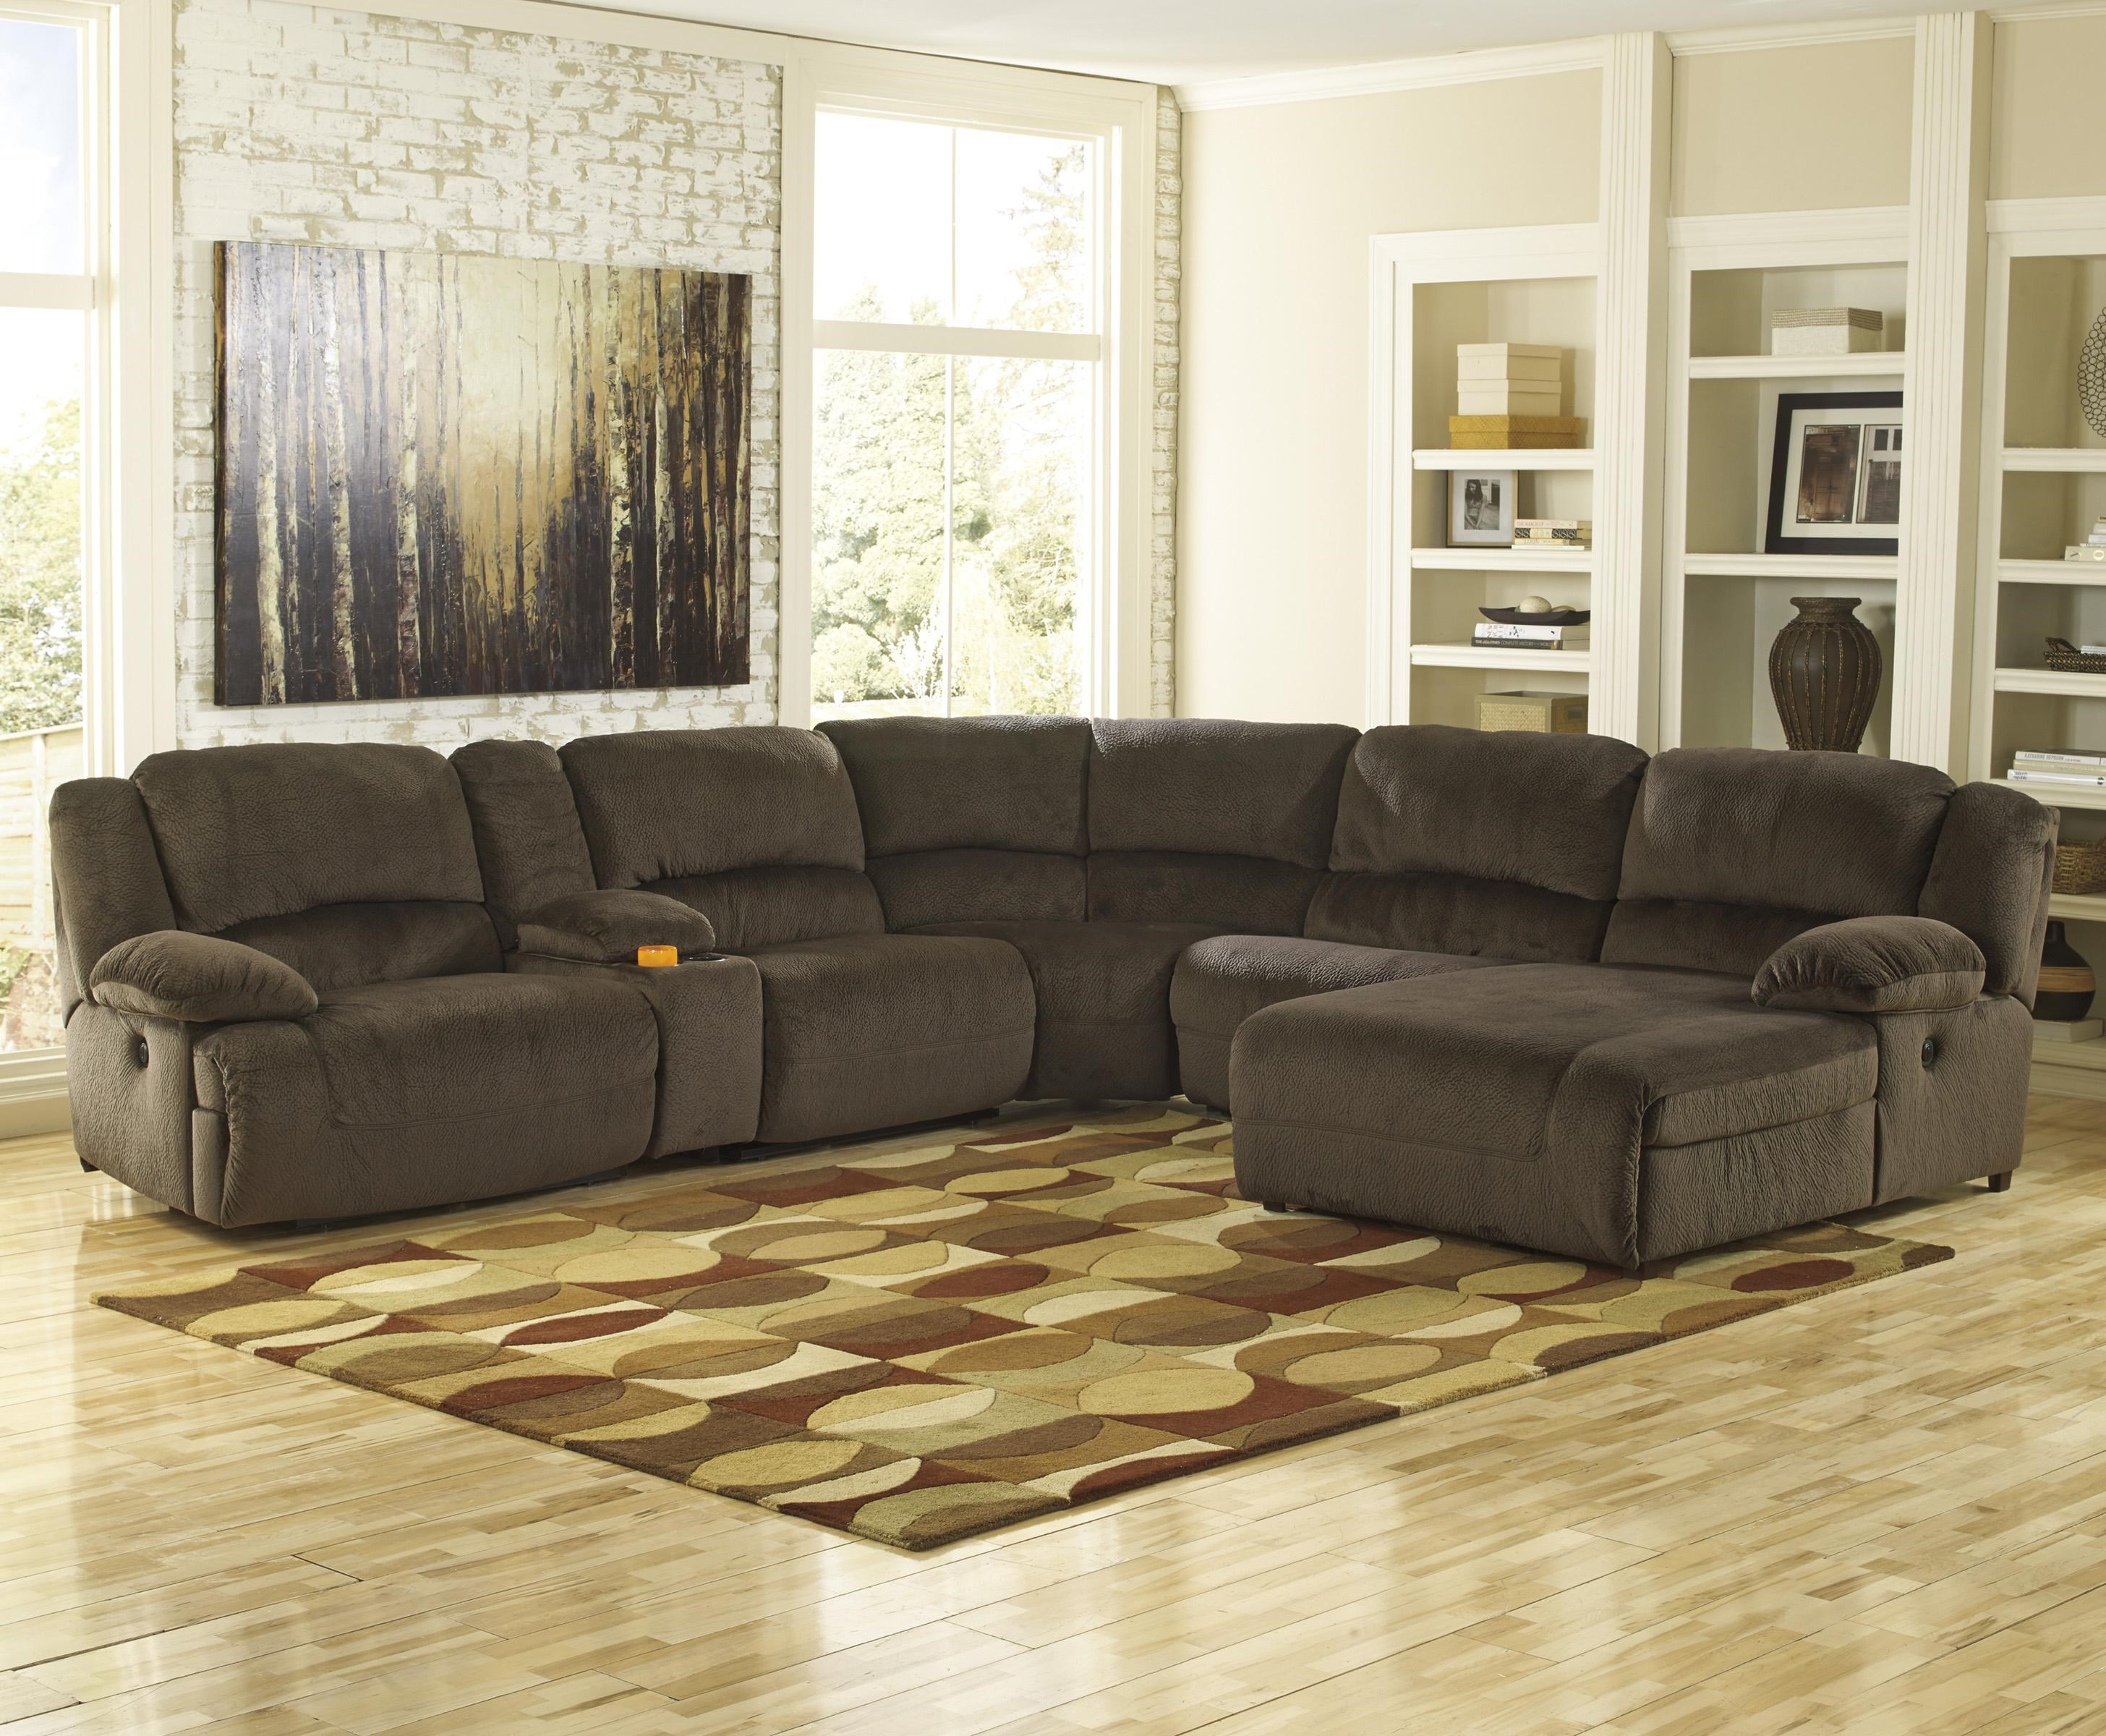 Power Reclining Sectional With Right Press Back Chaise By: Chocolate Reclining Sectional W/ Console & Chaise